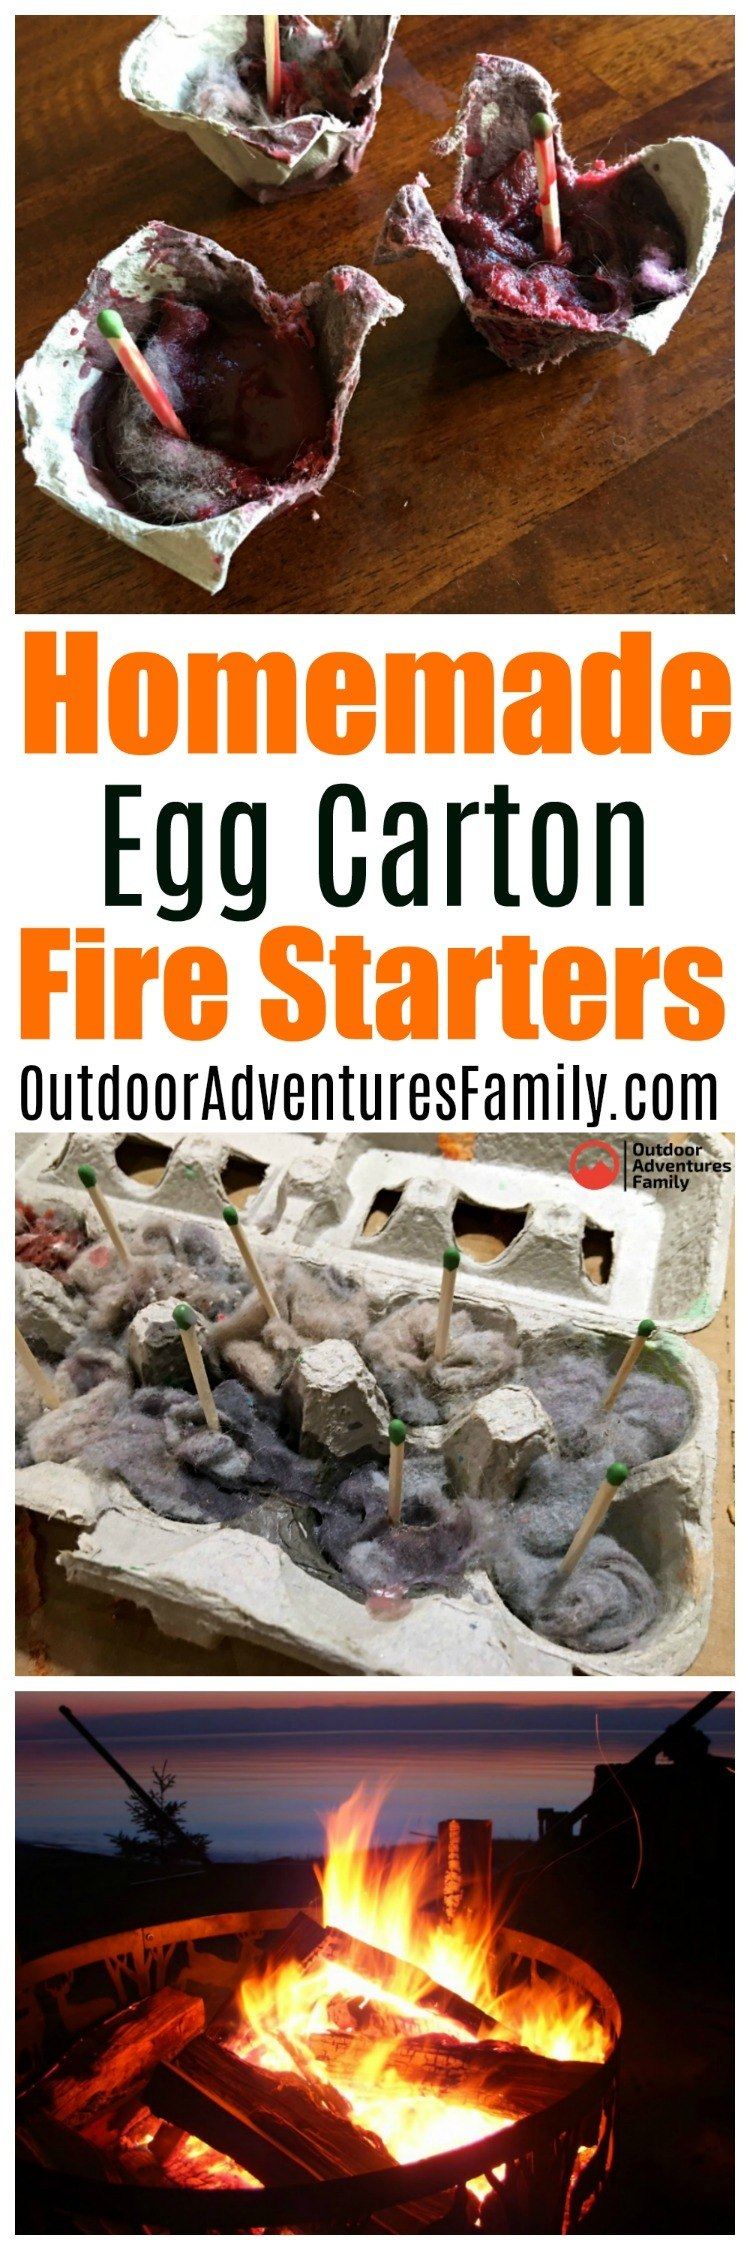 homemade egg carton fire starters